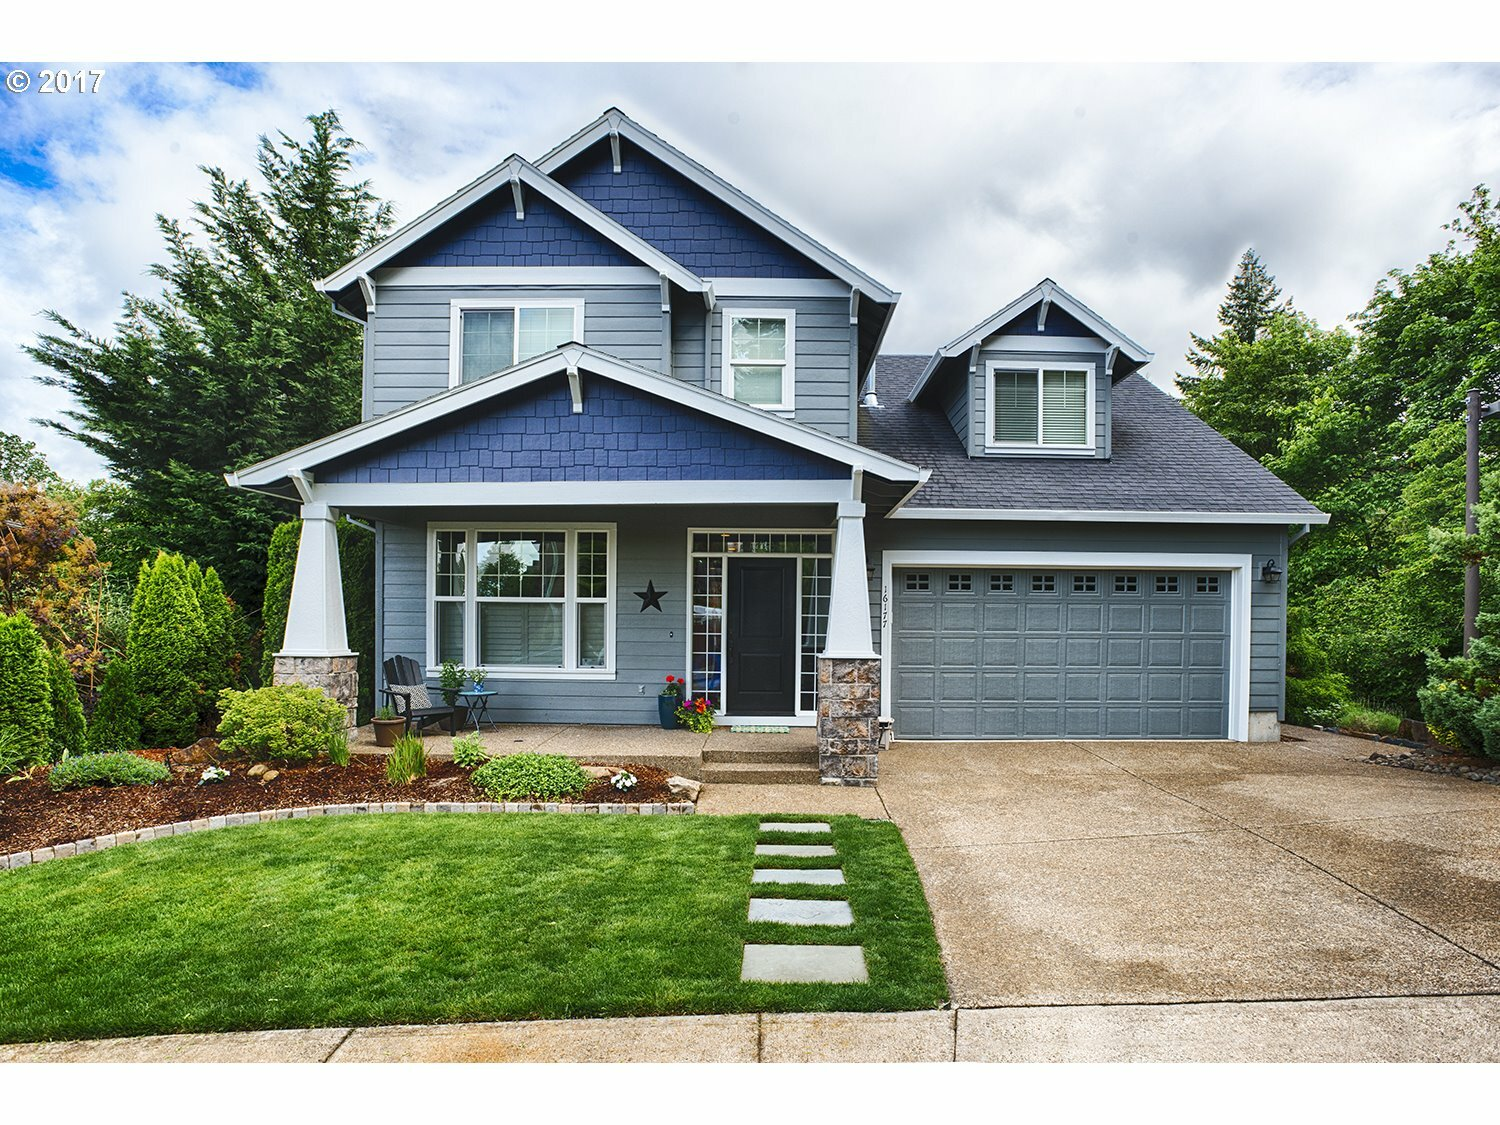 16177 Oak Valley Dr, Oregon City, OR - USA (photo 1)